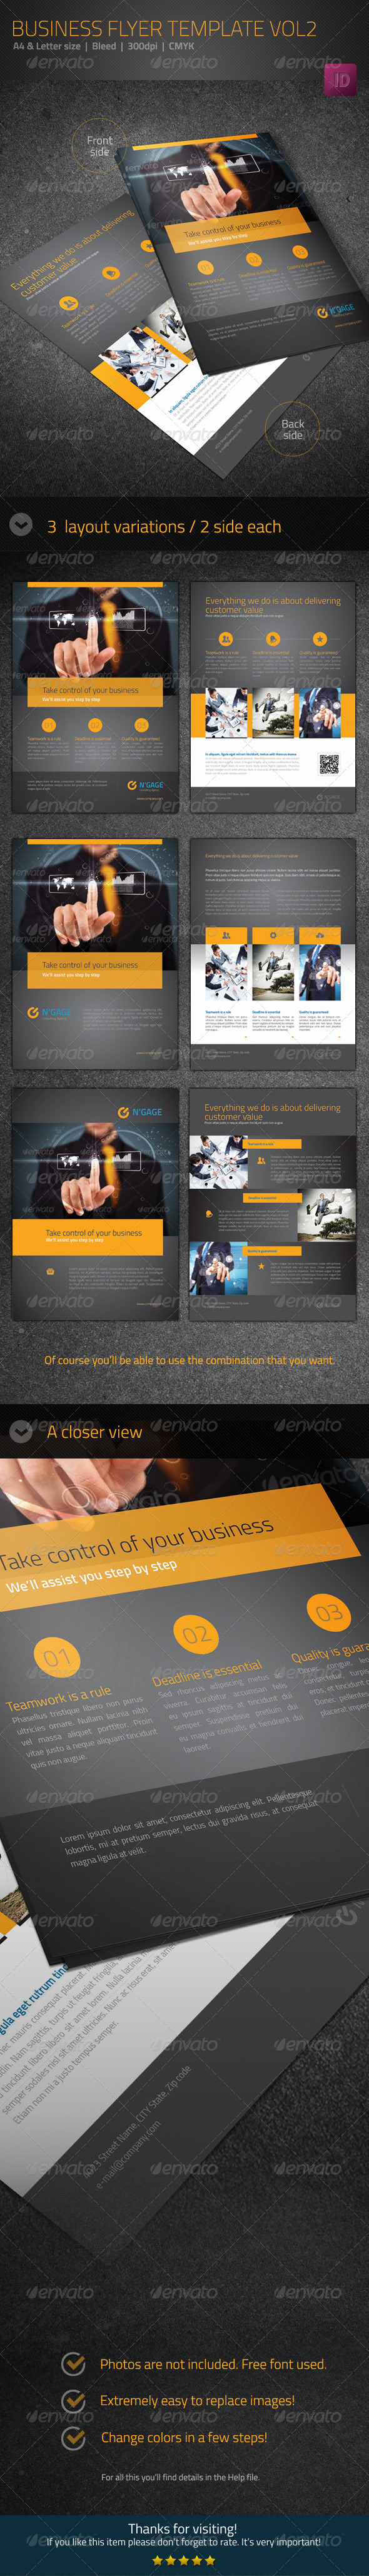 GraphicRiver Business Flyer Template Vol2 5991420